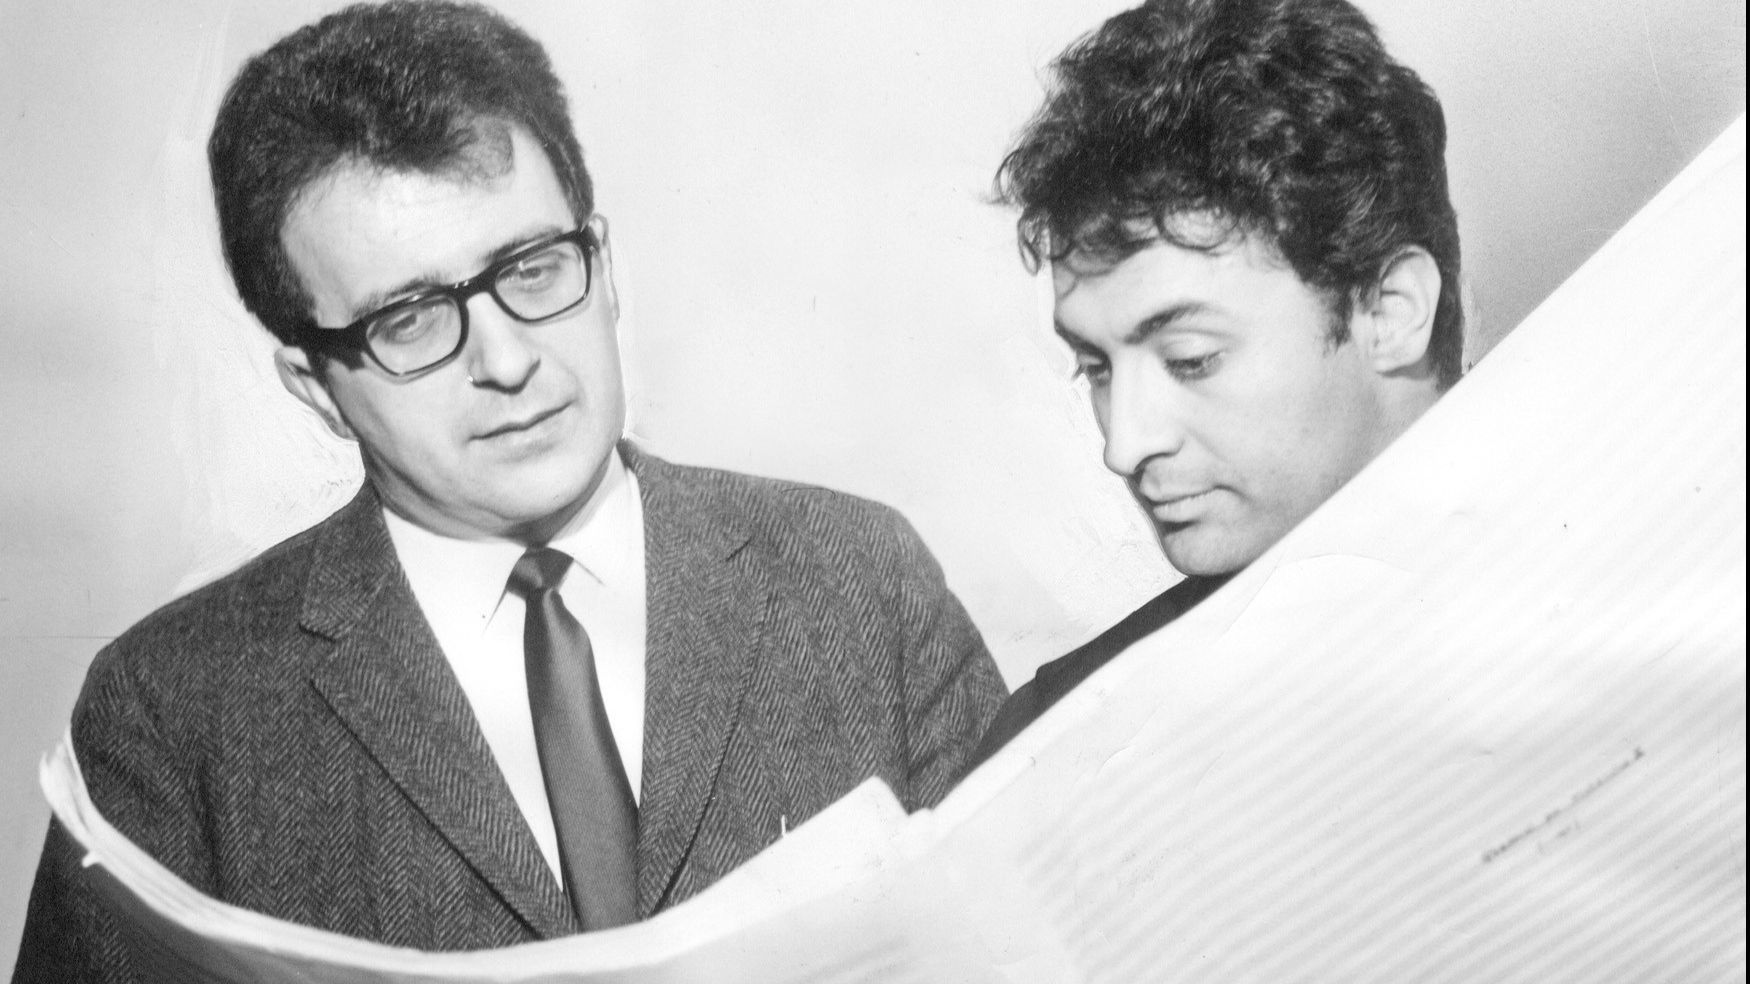 Luciano Berio and Zubin Mehta